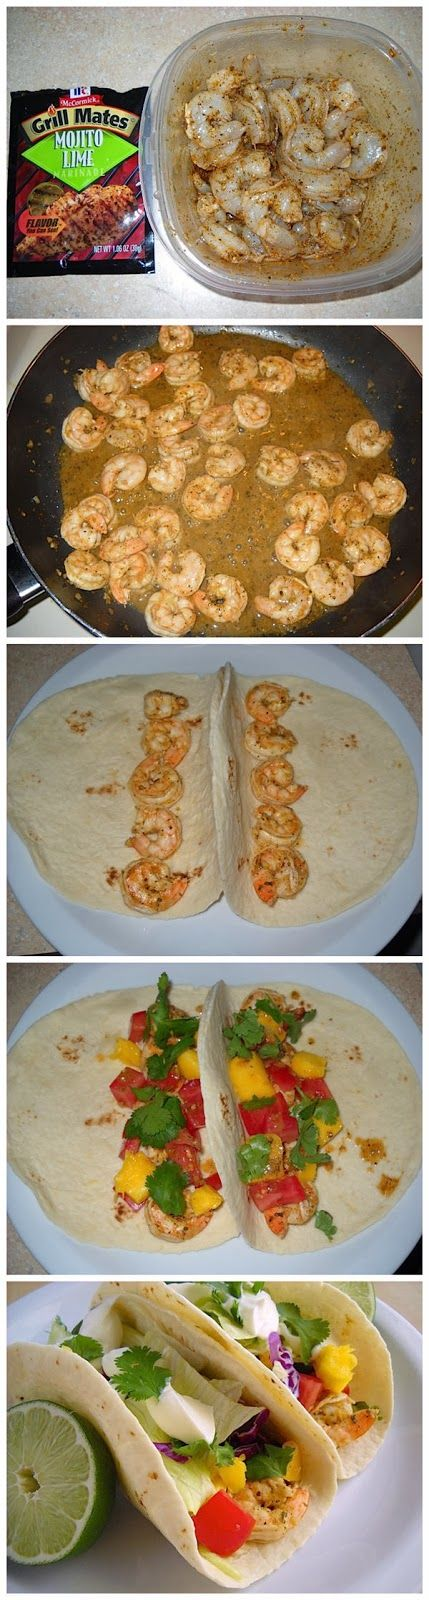 Super Simple Shrimp Tacos- we love these packs of marinade